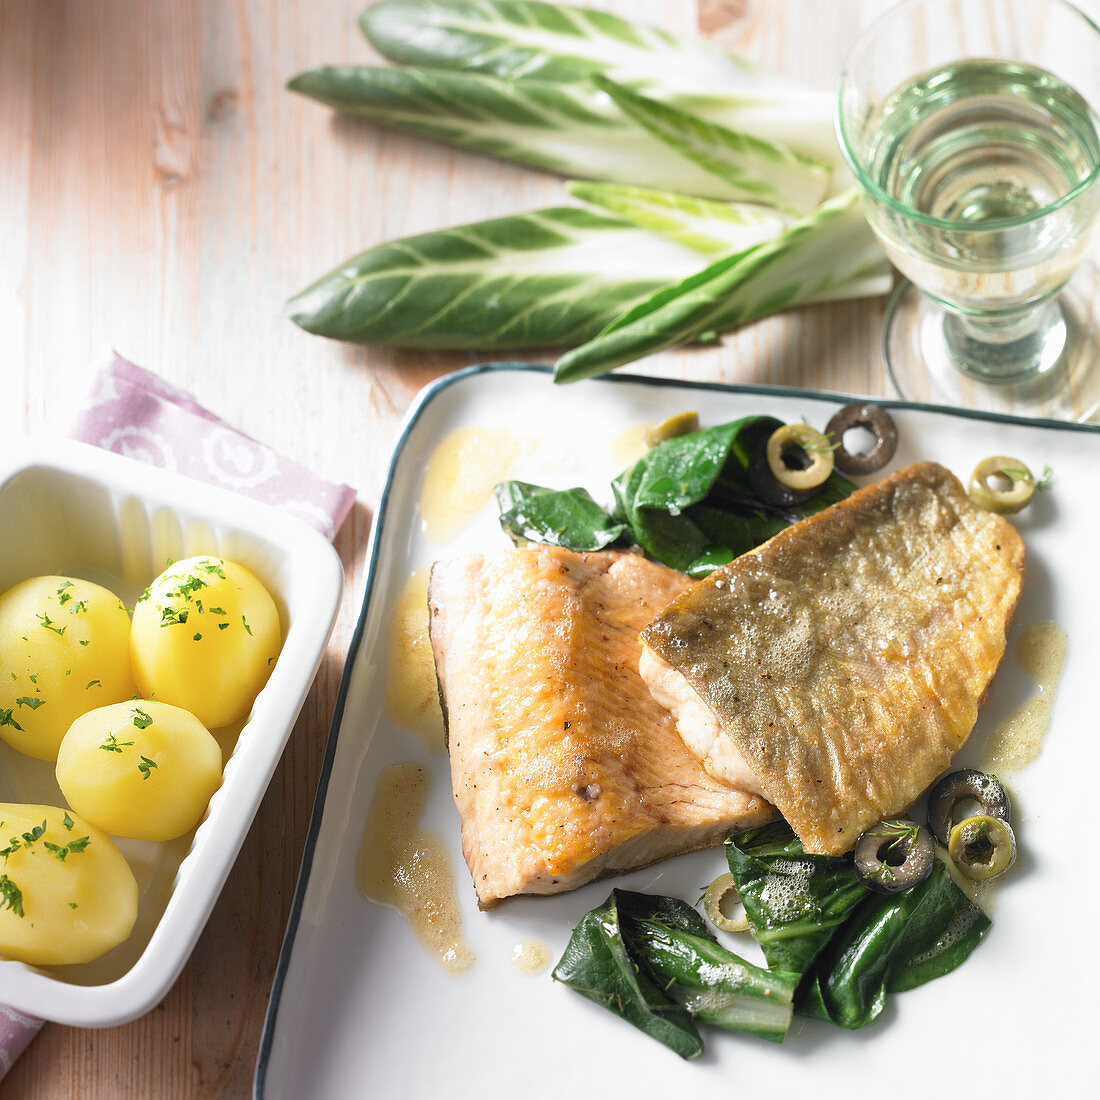 Fried char with lemon butter on a bed of chard and green olives